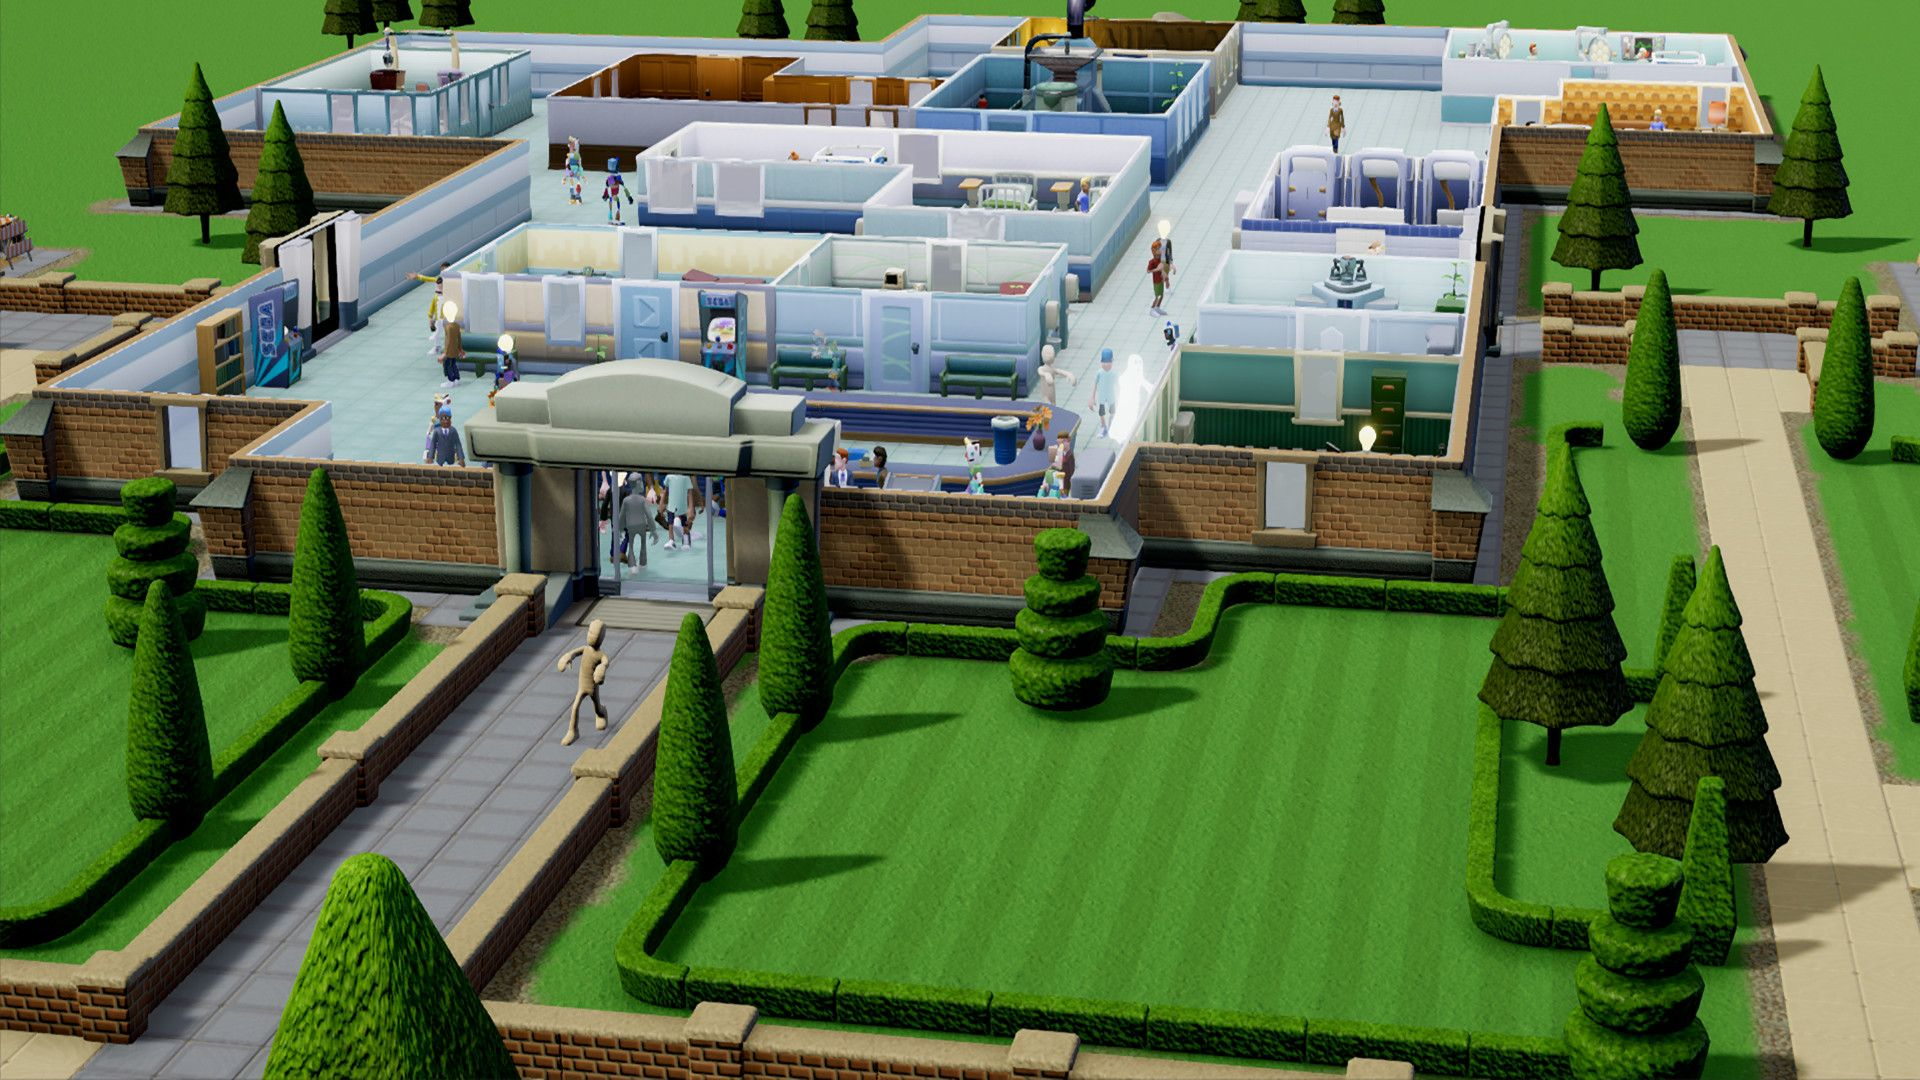 primer gameplay de Two Point Hospital